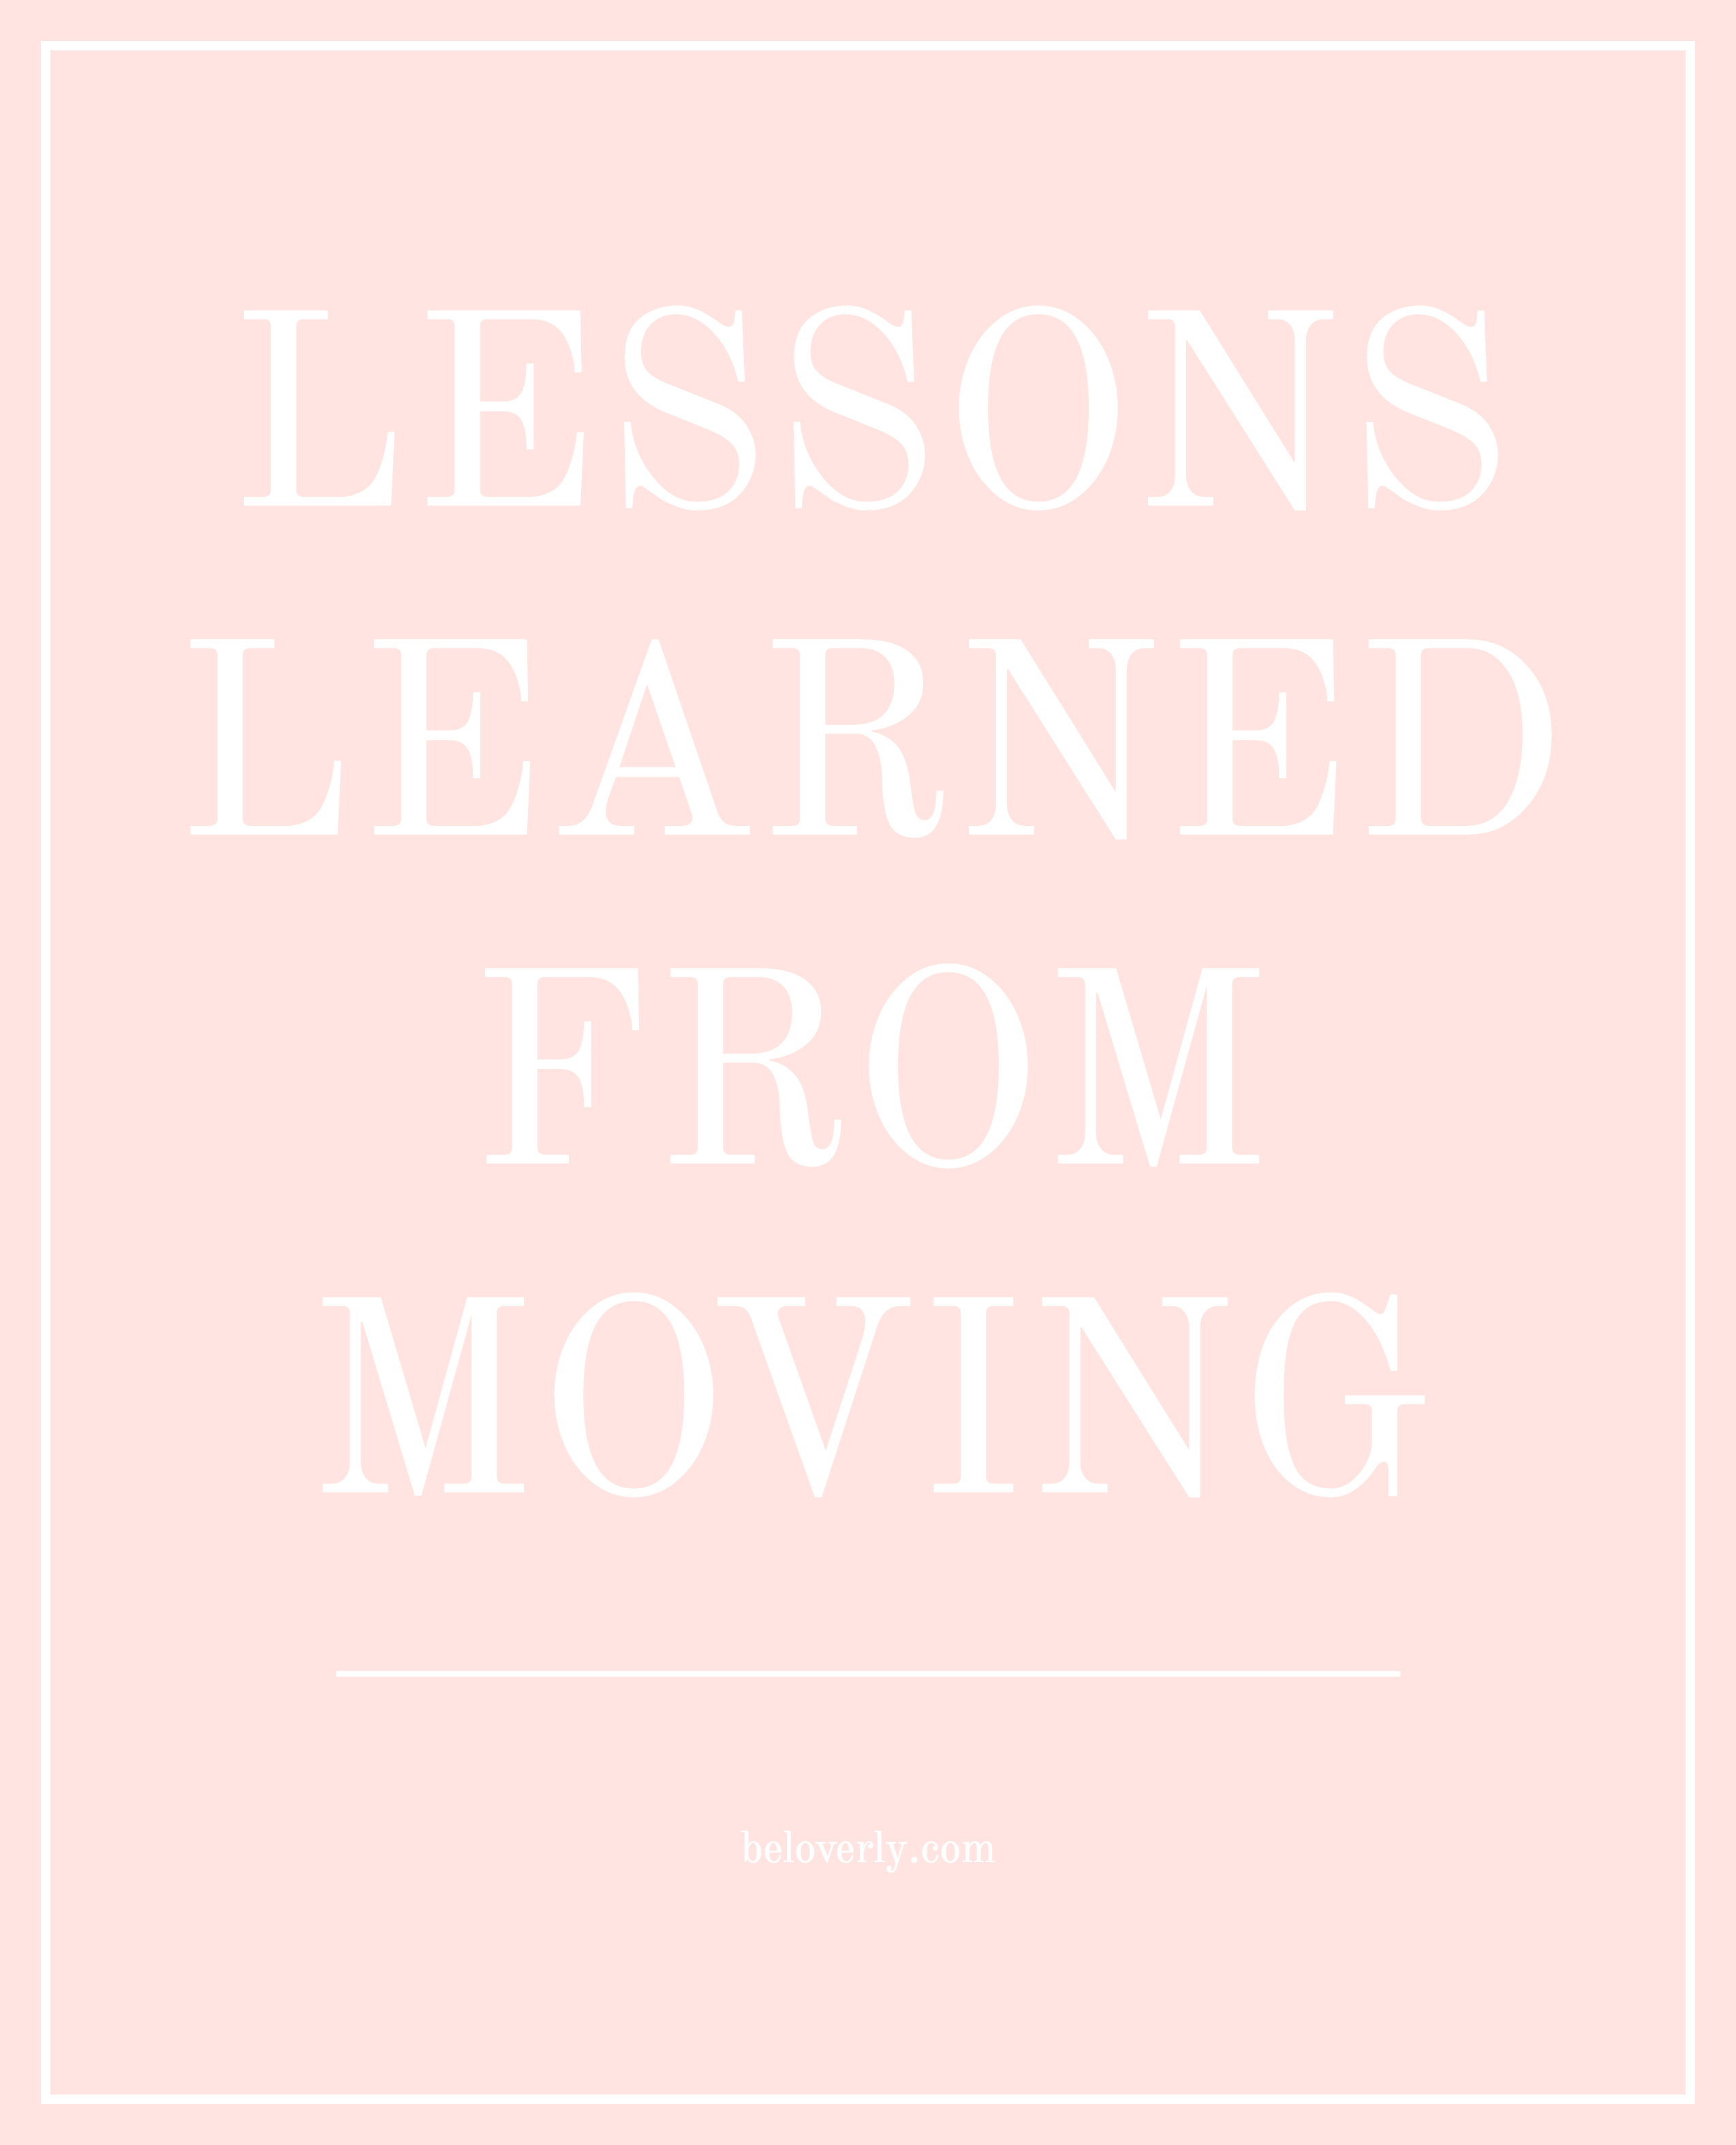 lessonslearnedfrommoving